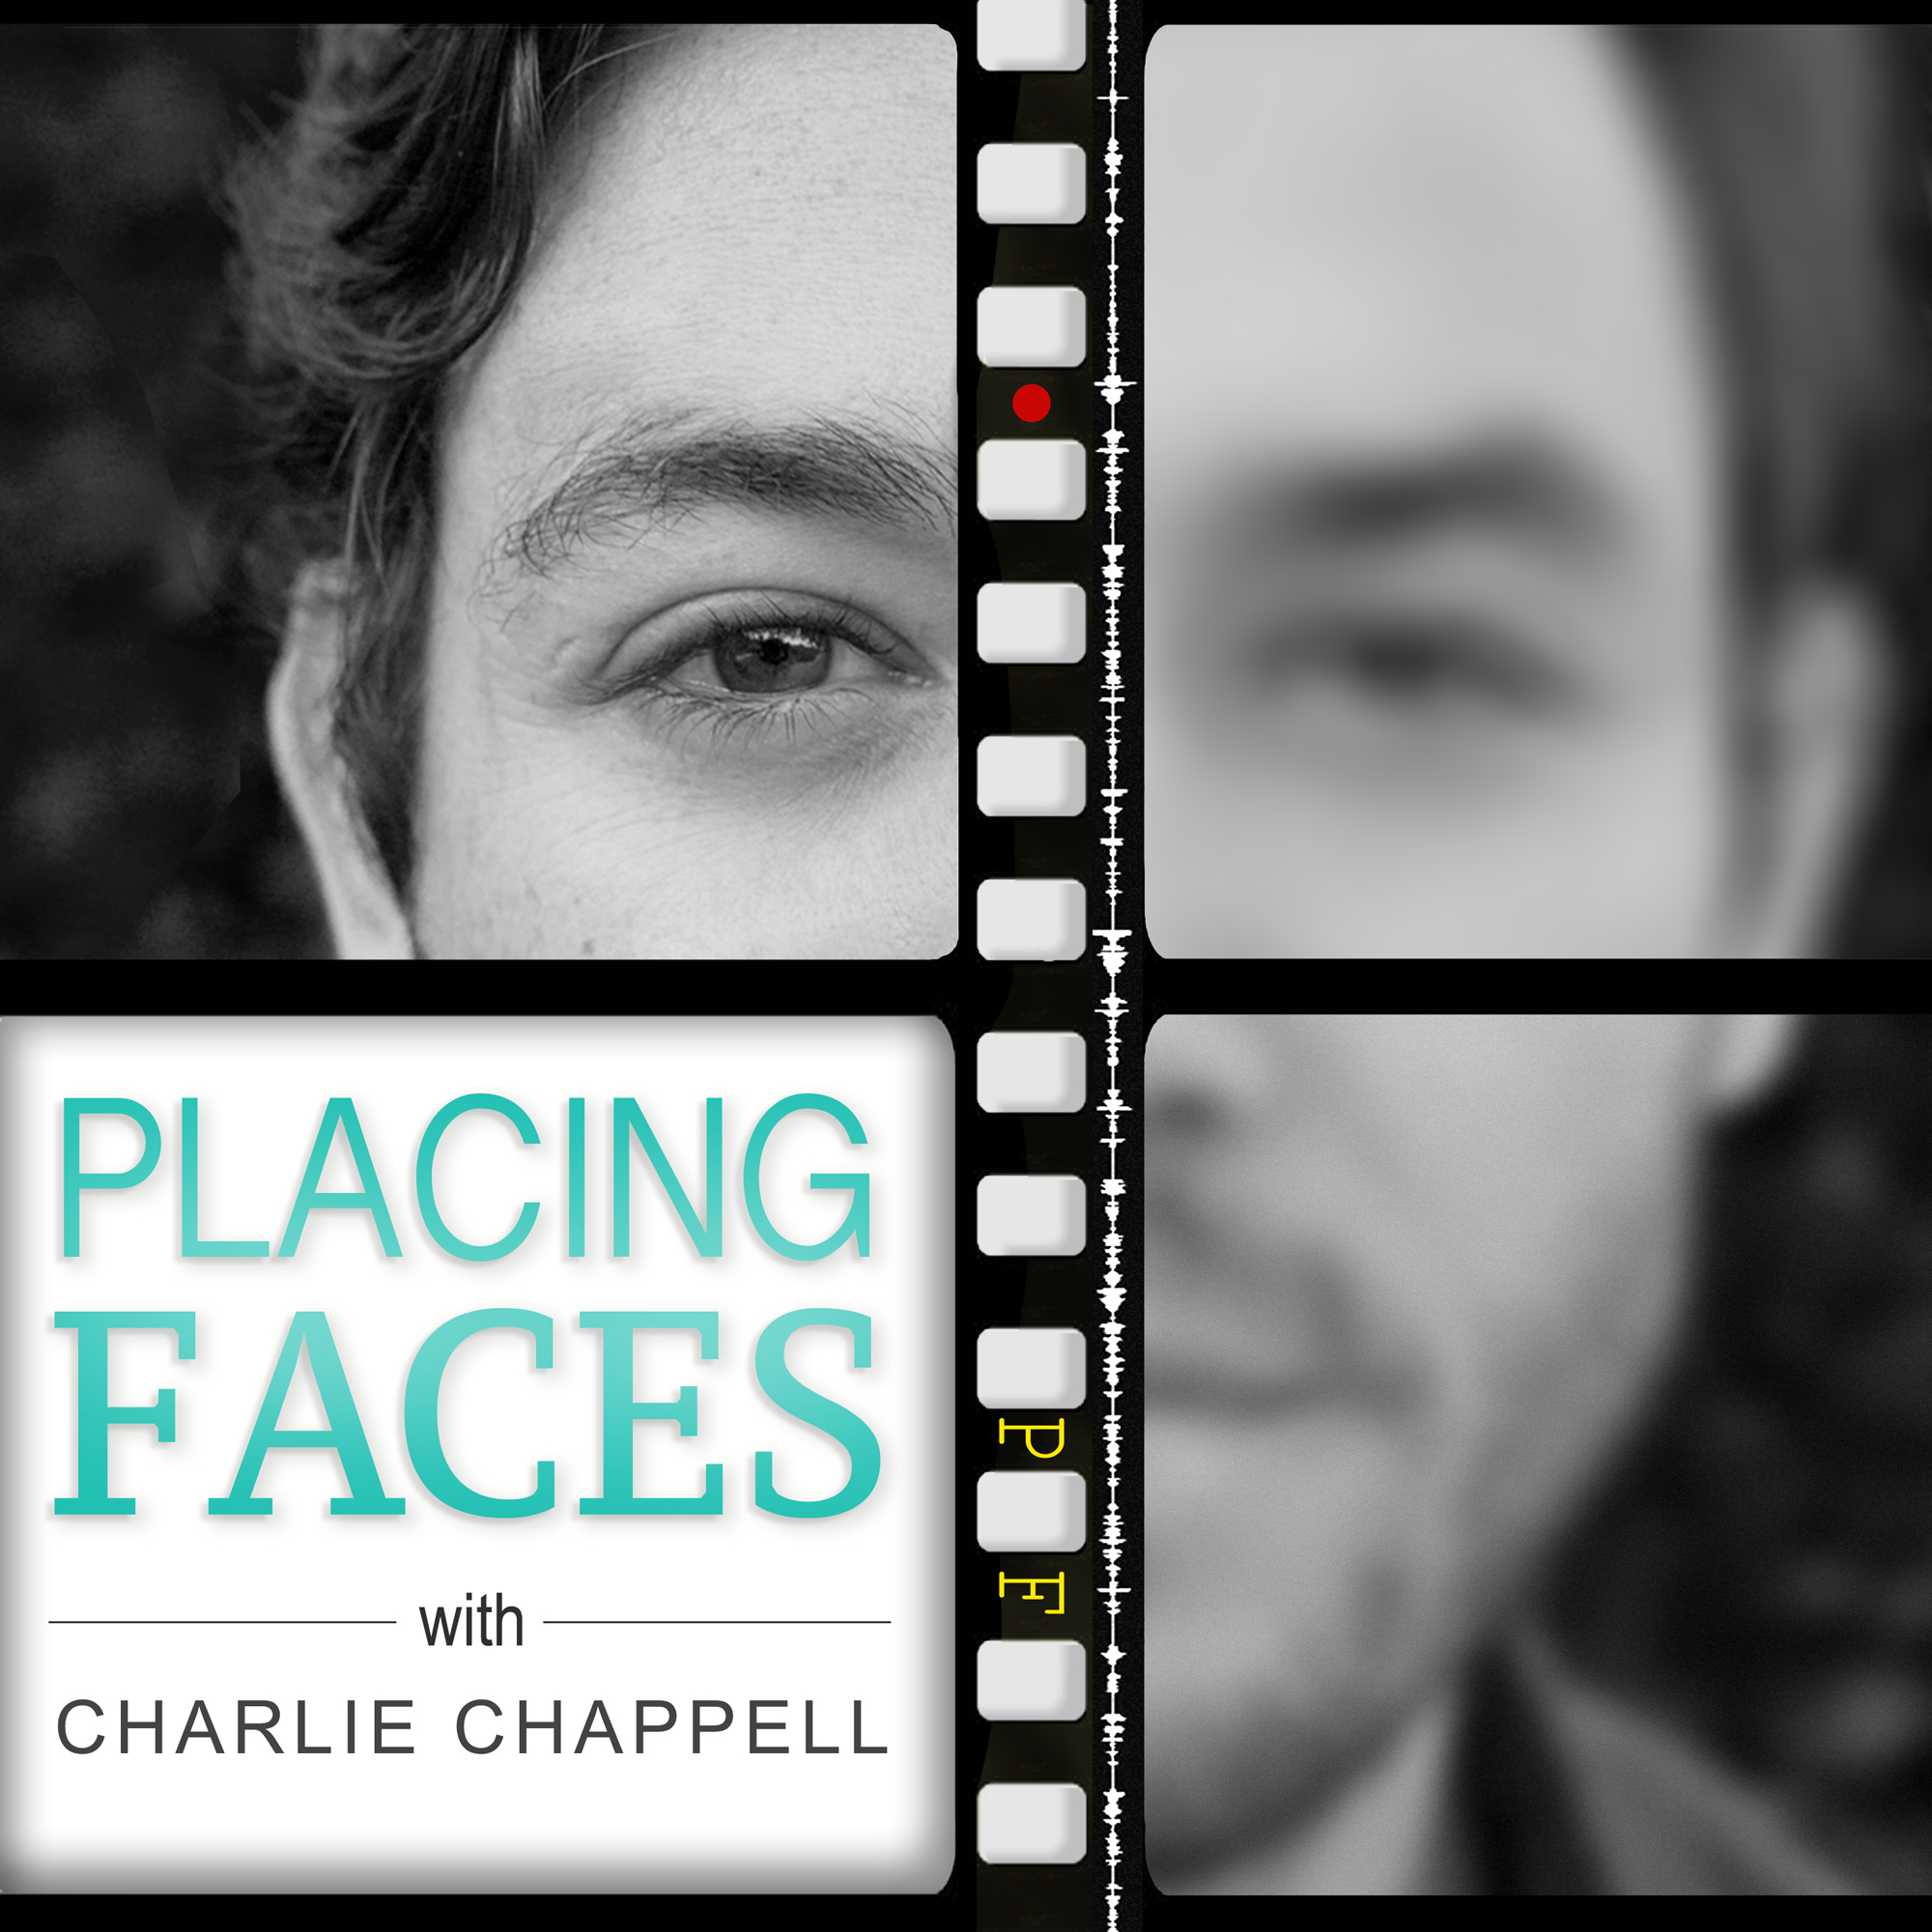 Placing-Faces-Cover-Art_for1S.jpg